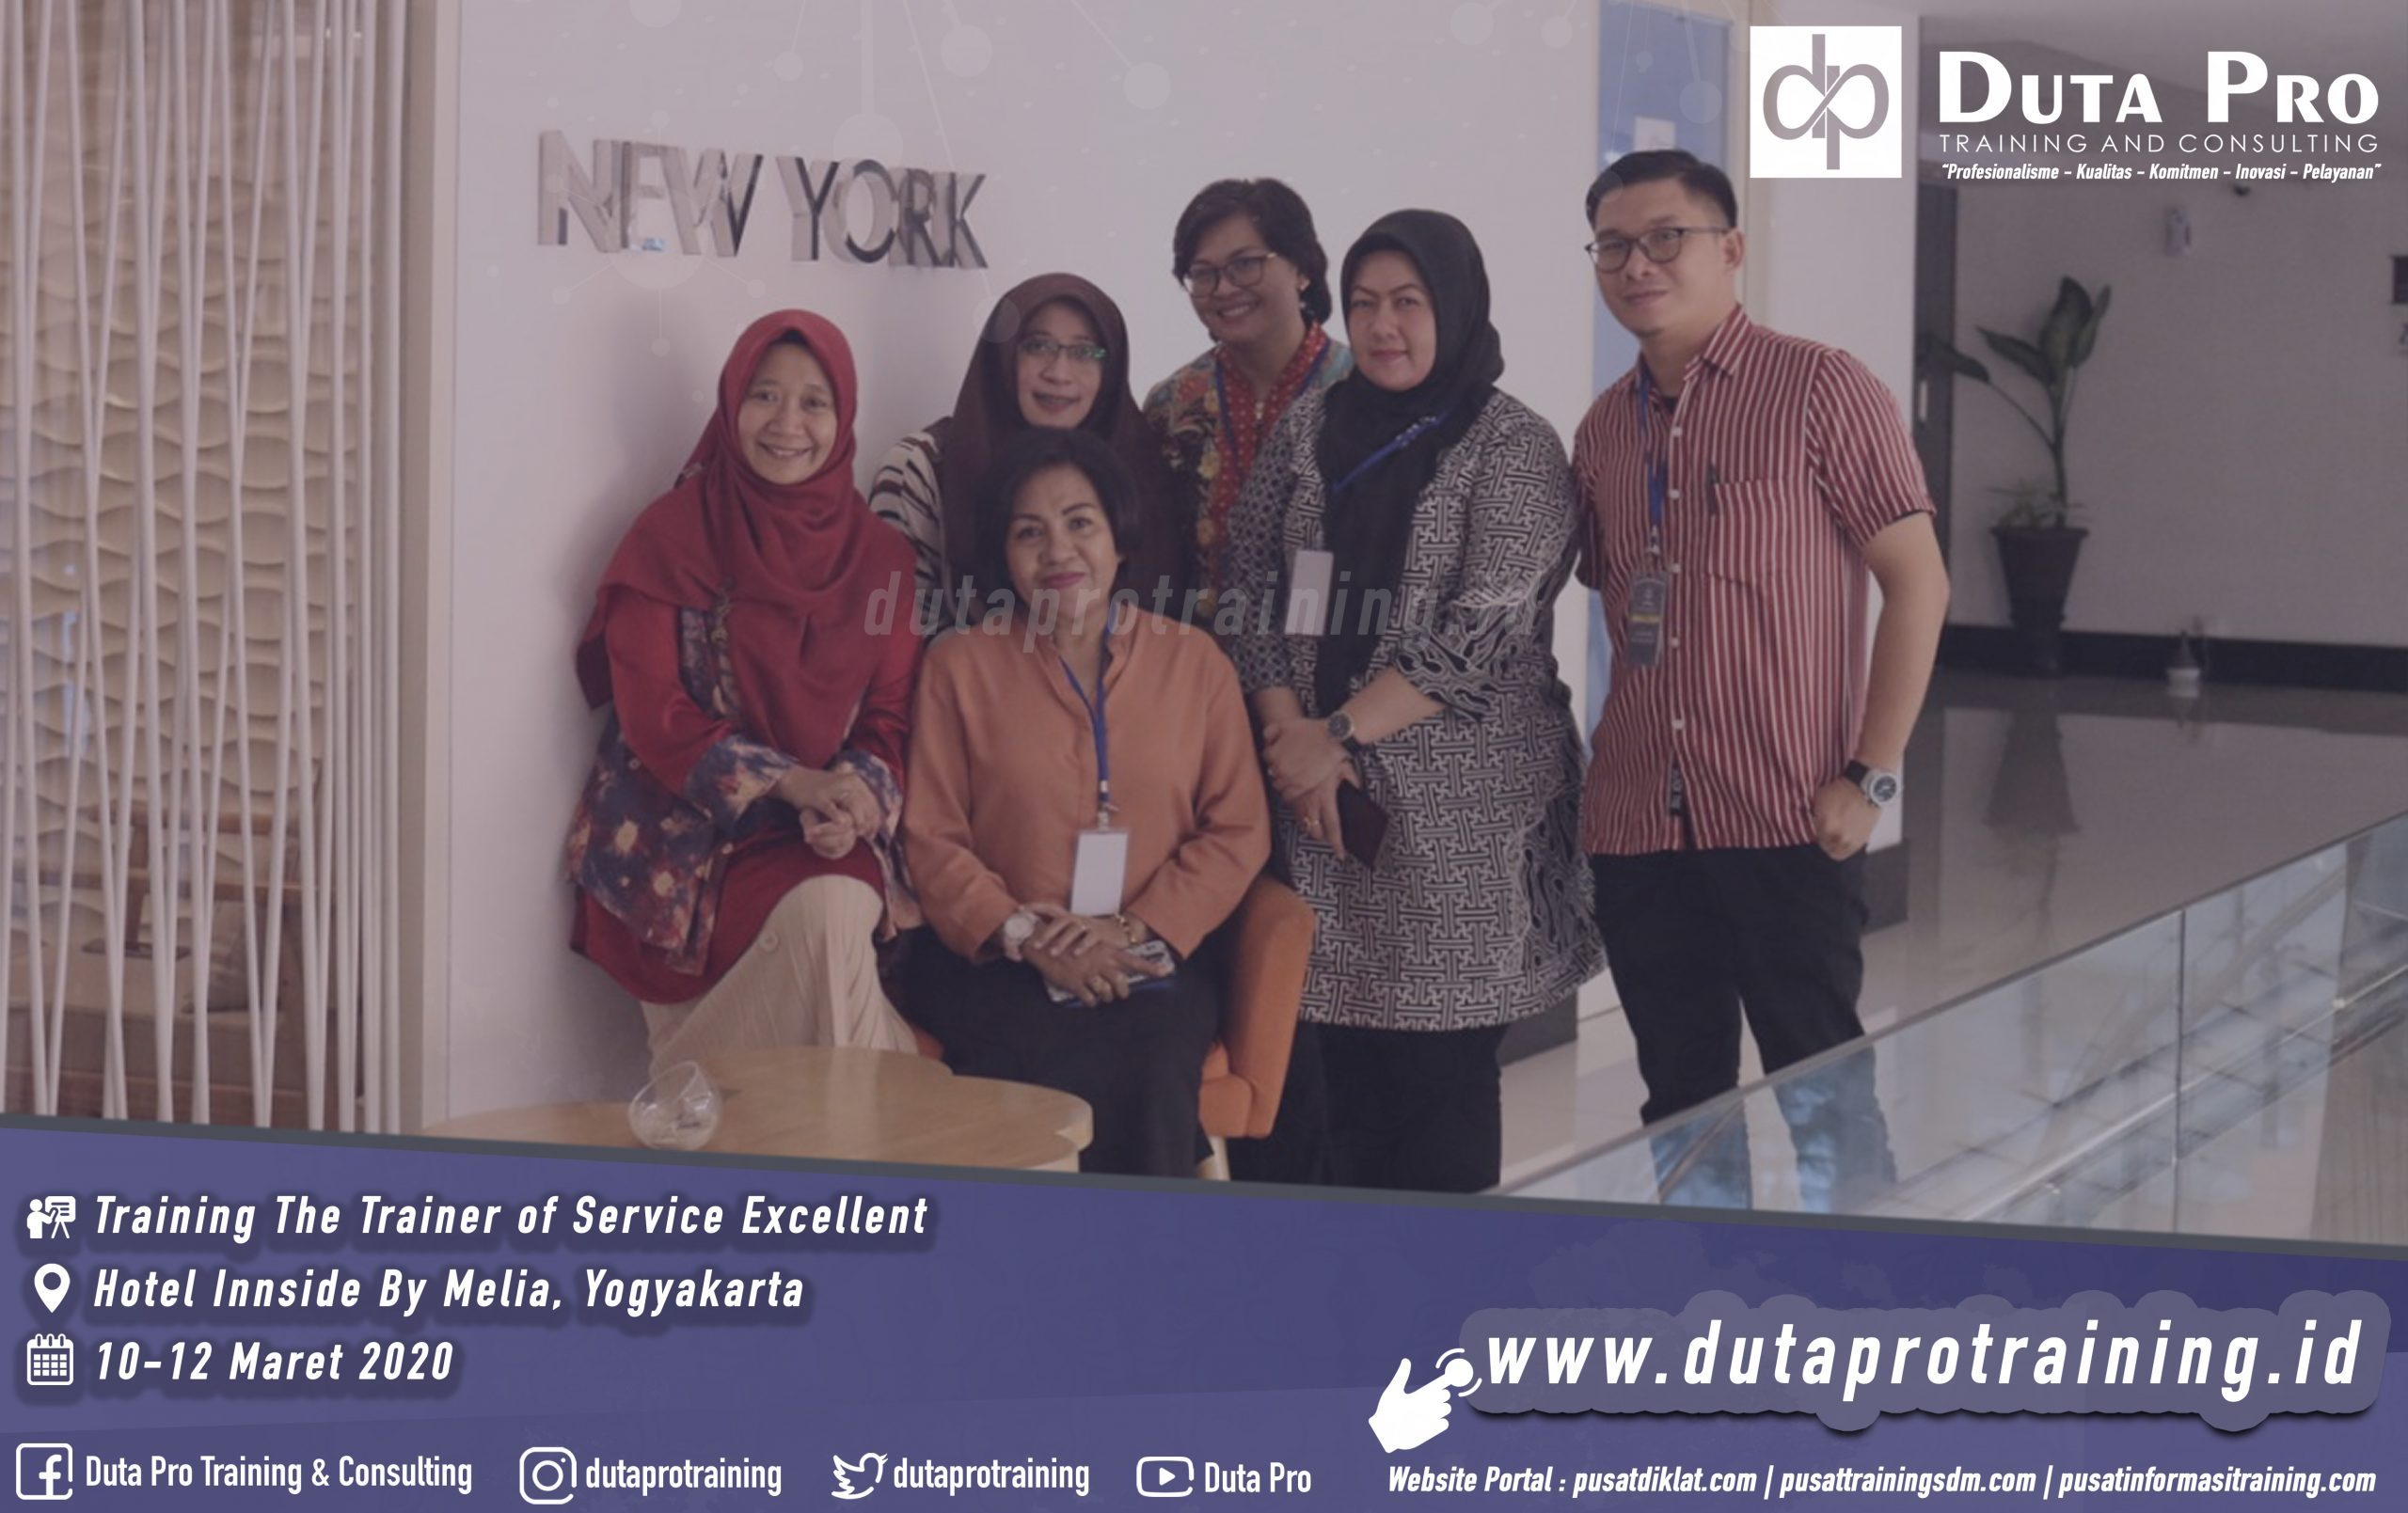 Training The Trainer of Service Excellent Hotel jogja duta pro. Galeri Website scaled 2559x1609 - Training Customer Service Skills for Online Service